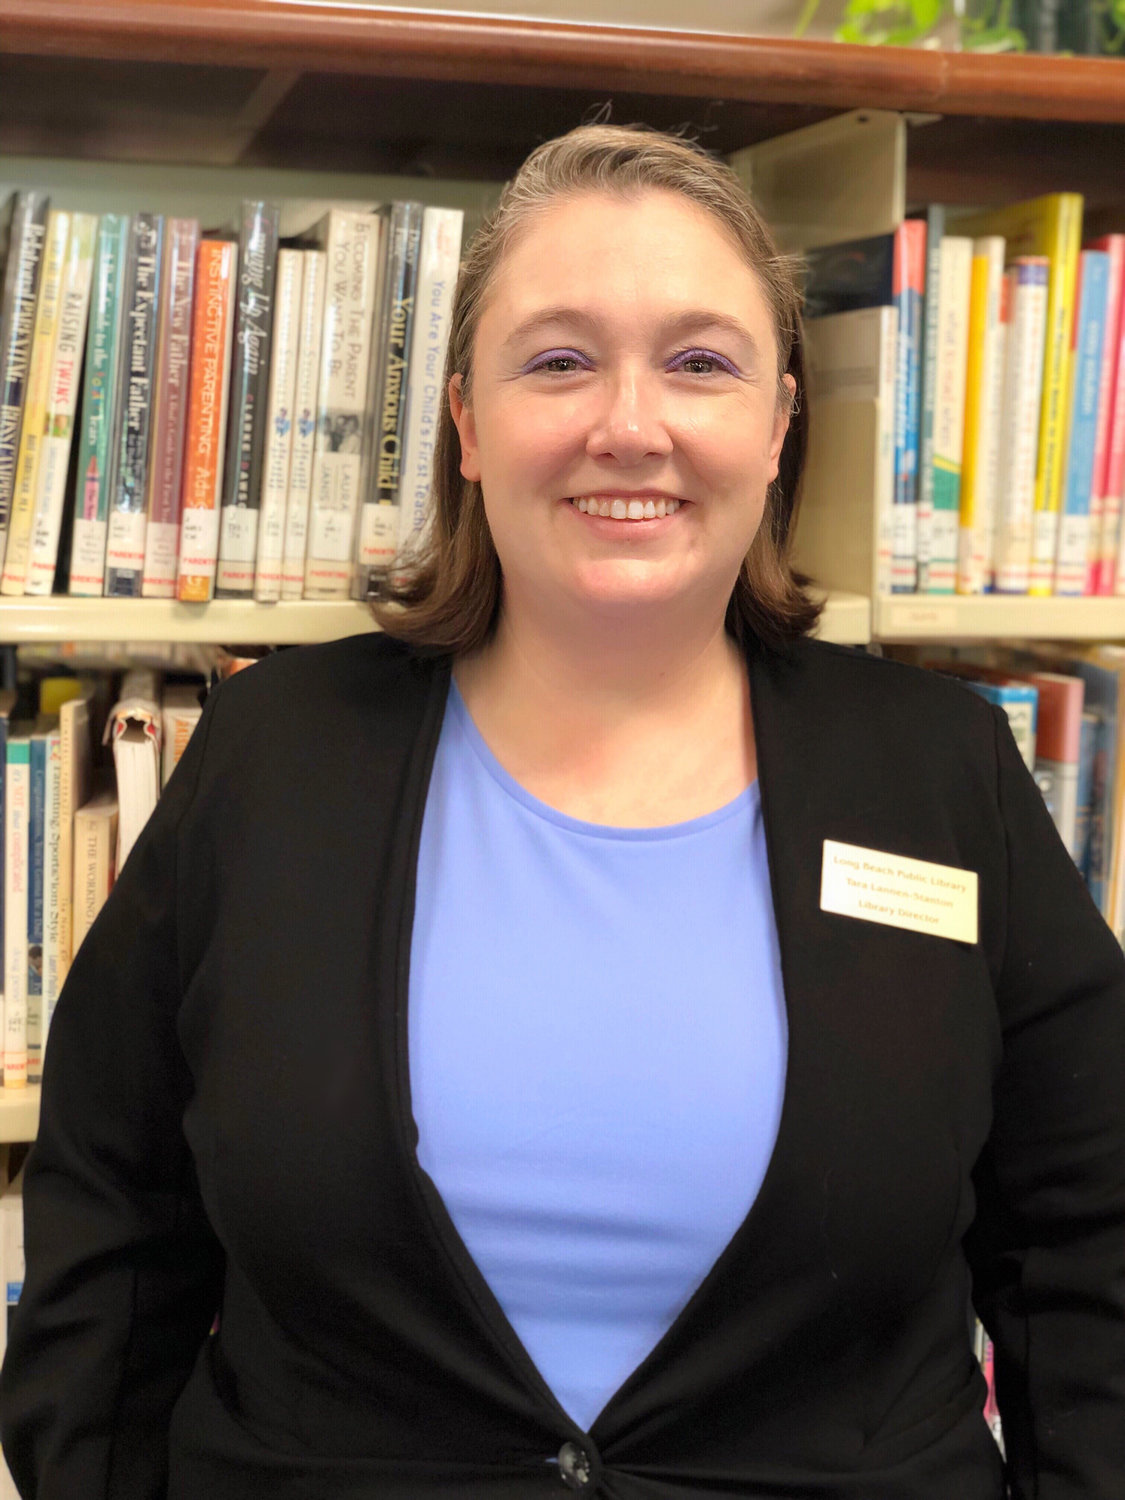 Lannen-Stanton took over as Long Beach Library Director on August 1.